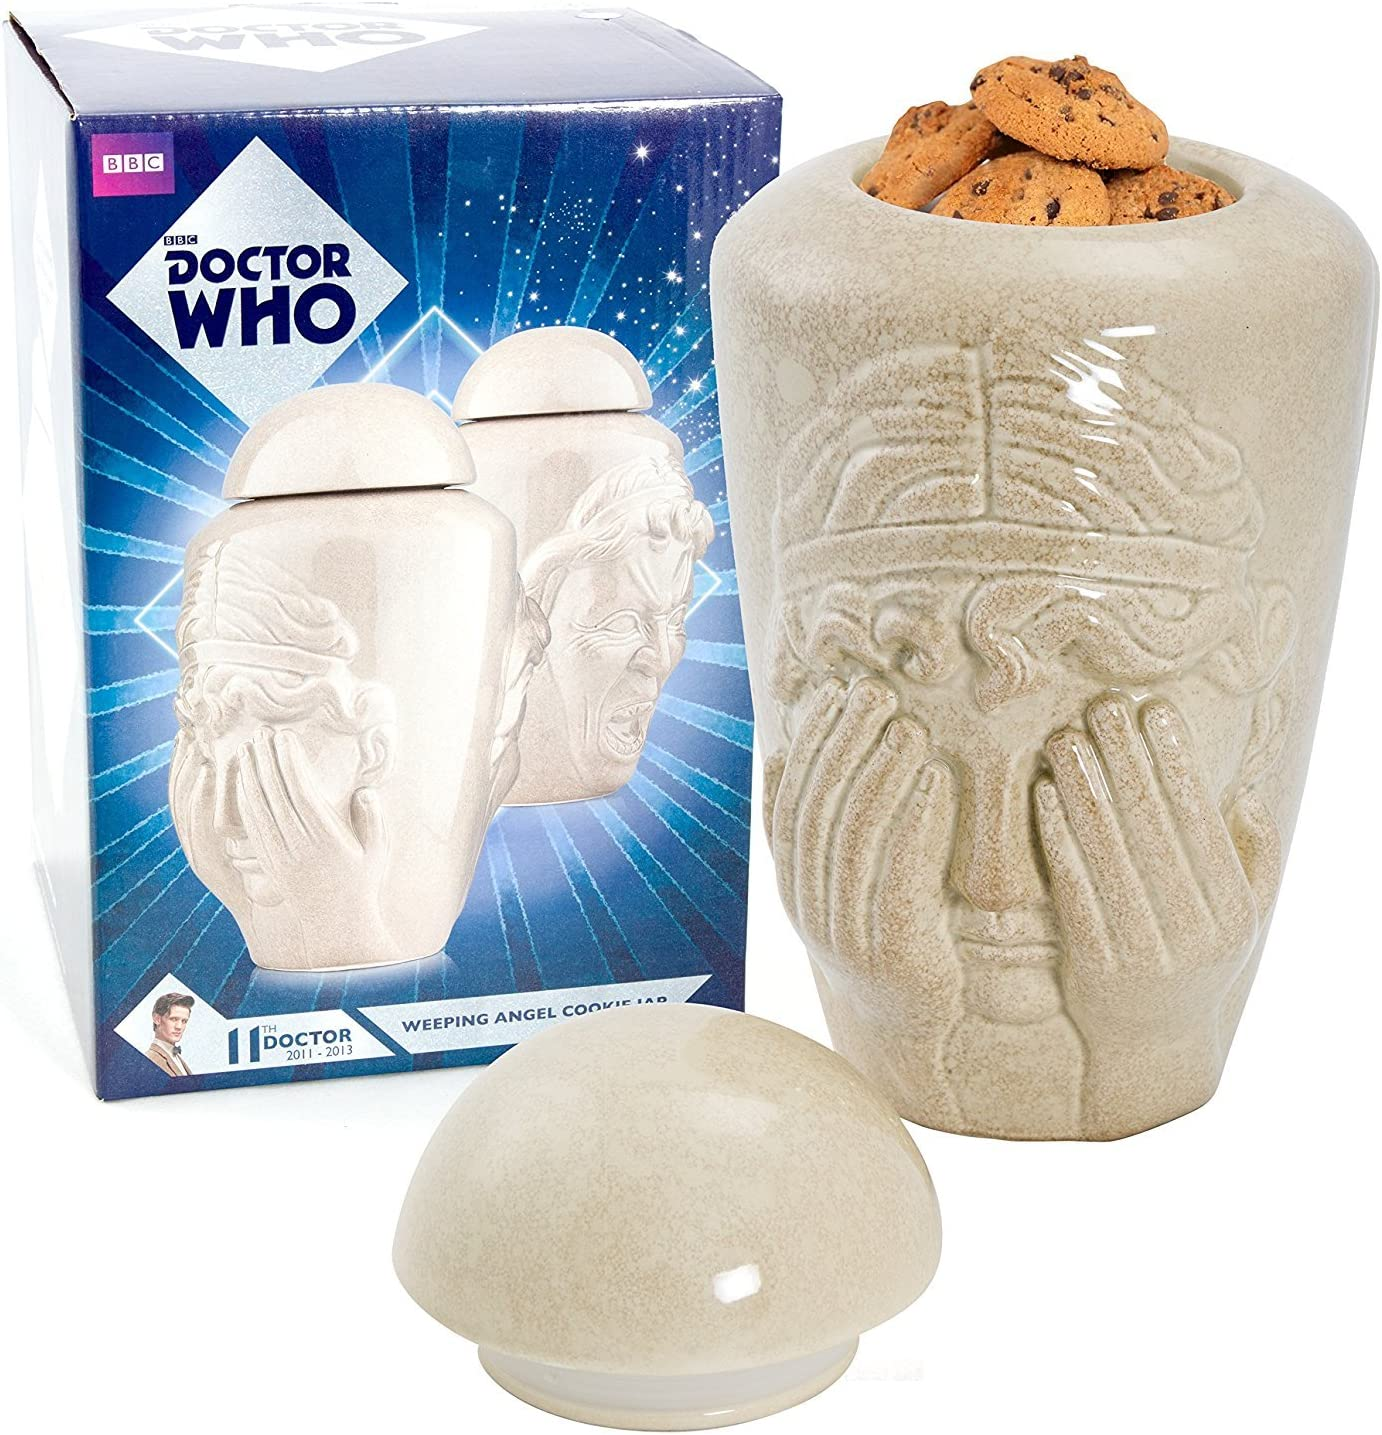 Doctor Who Weeping Angel Cookie Jar - Two Face Design, Don't Blink